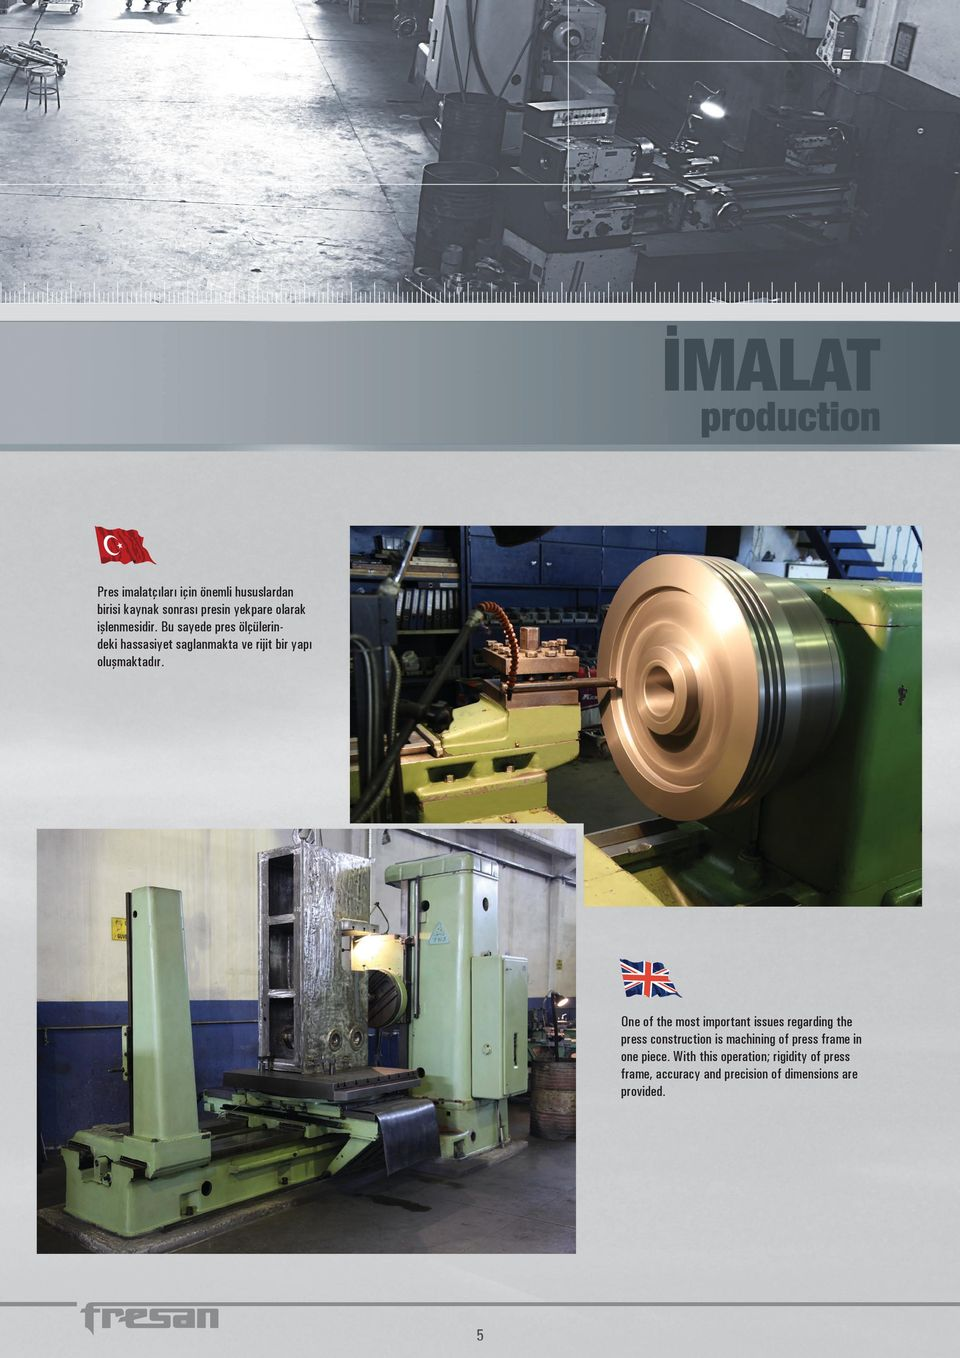 One of the most important issues regarding the press construction is machining of press frame in